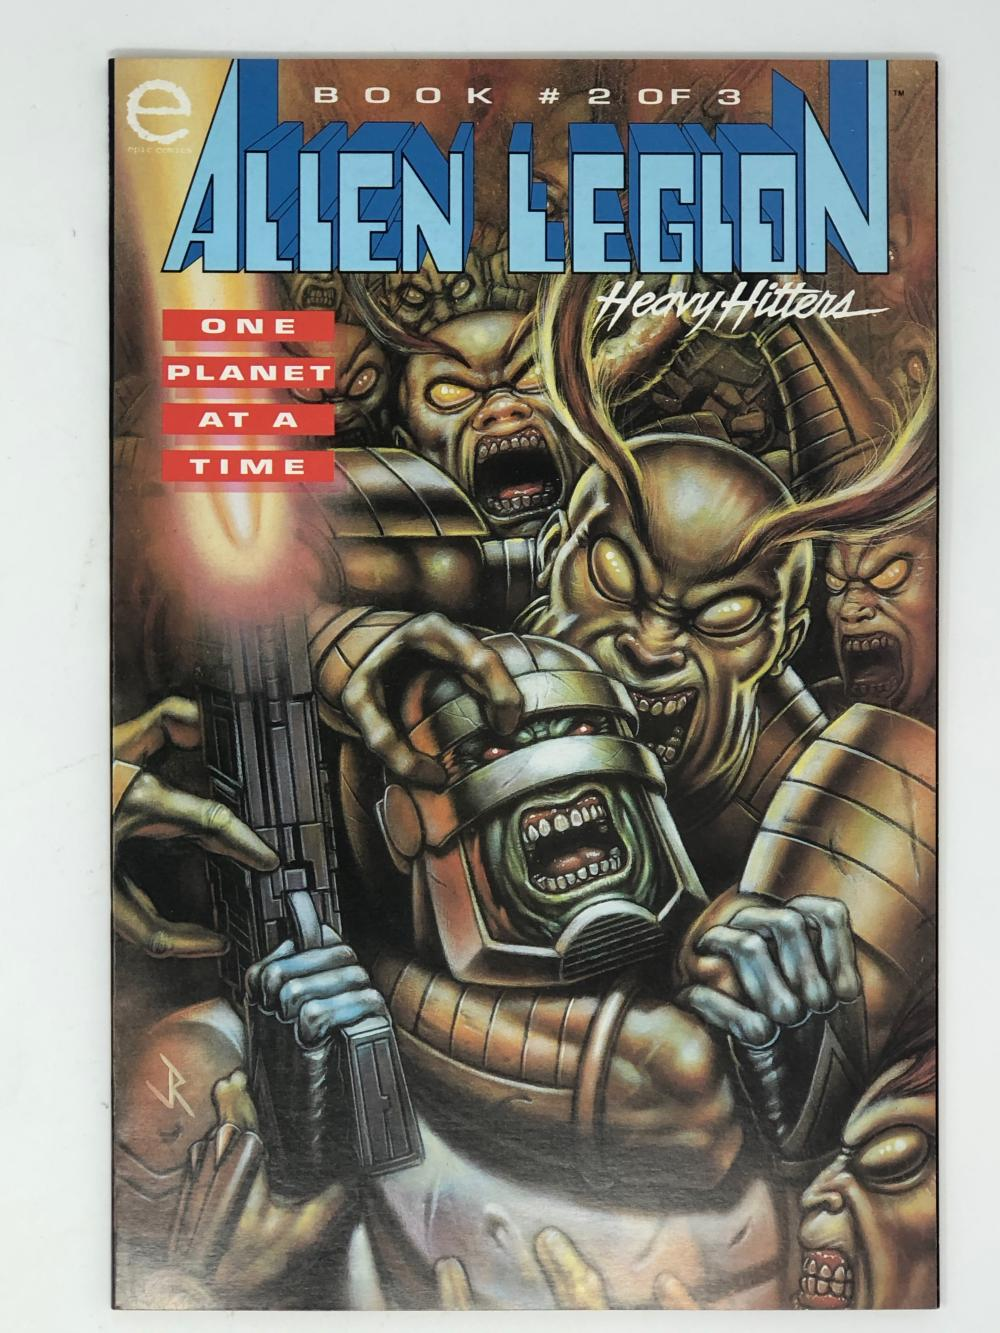 MARVEL, ALIEN LEGION book 2 of 3 one planet at a time